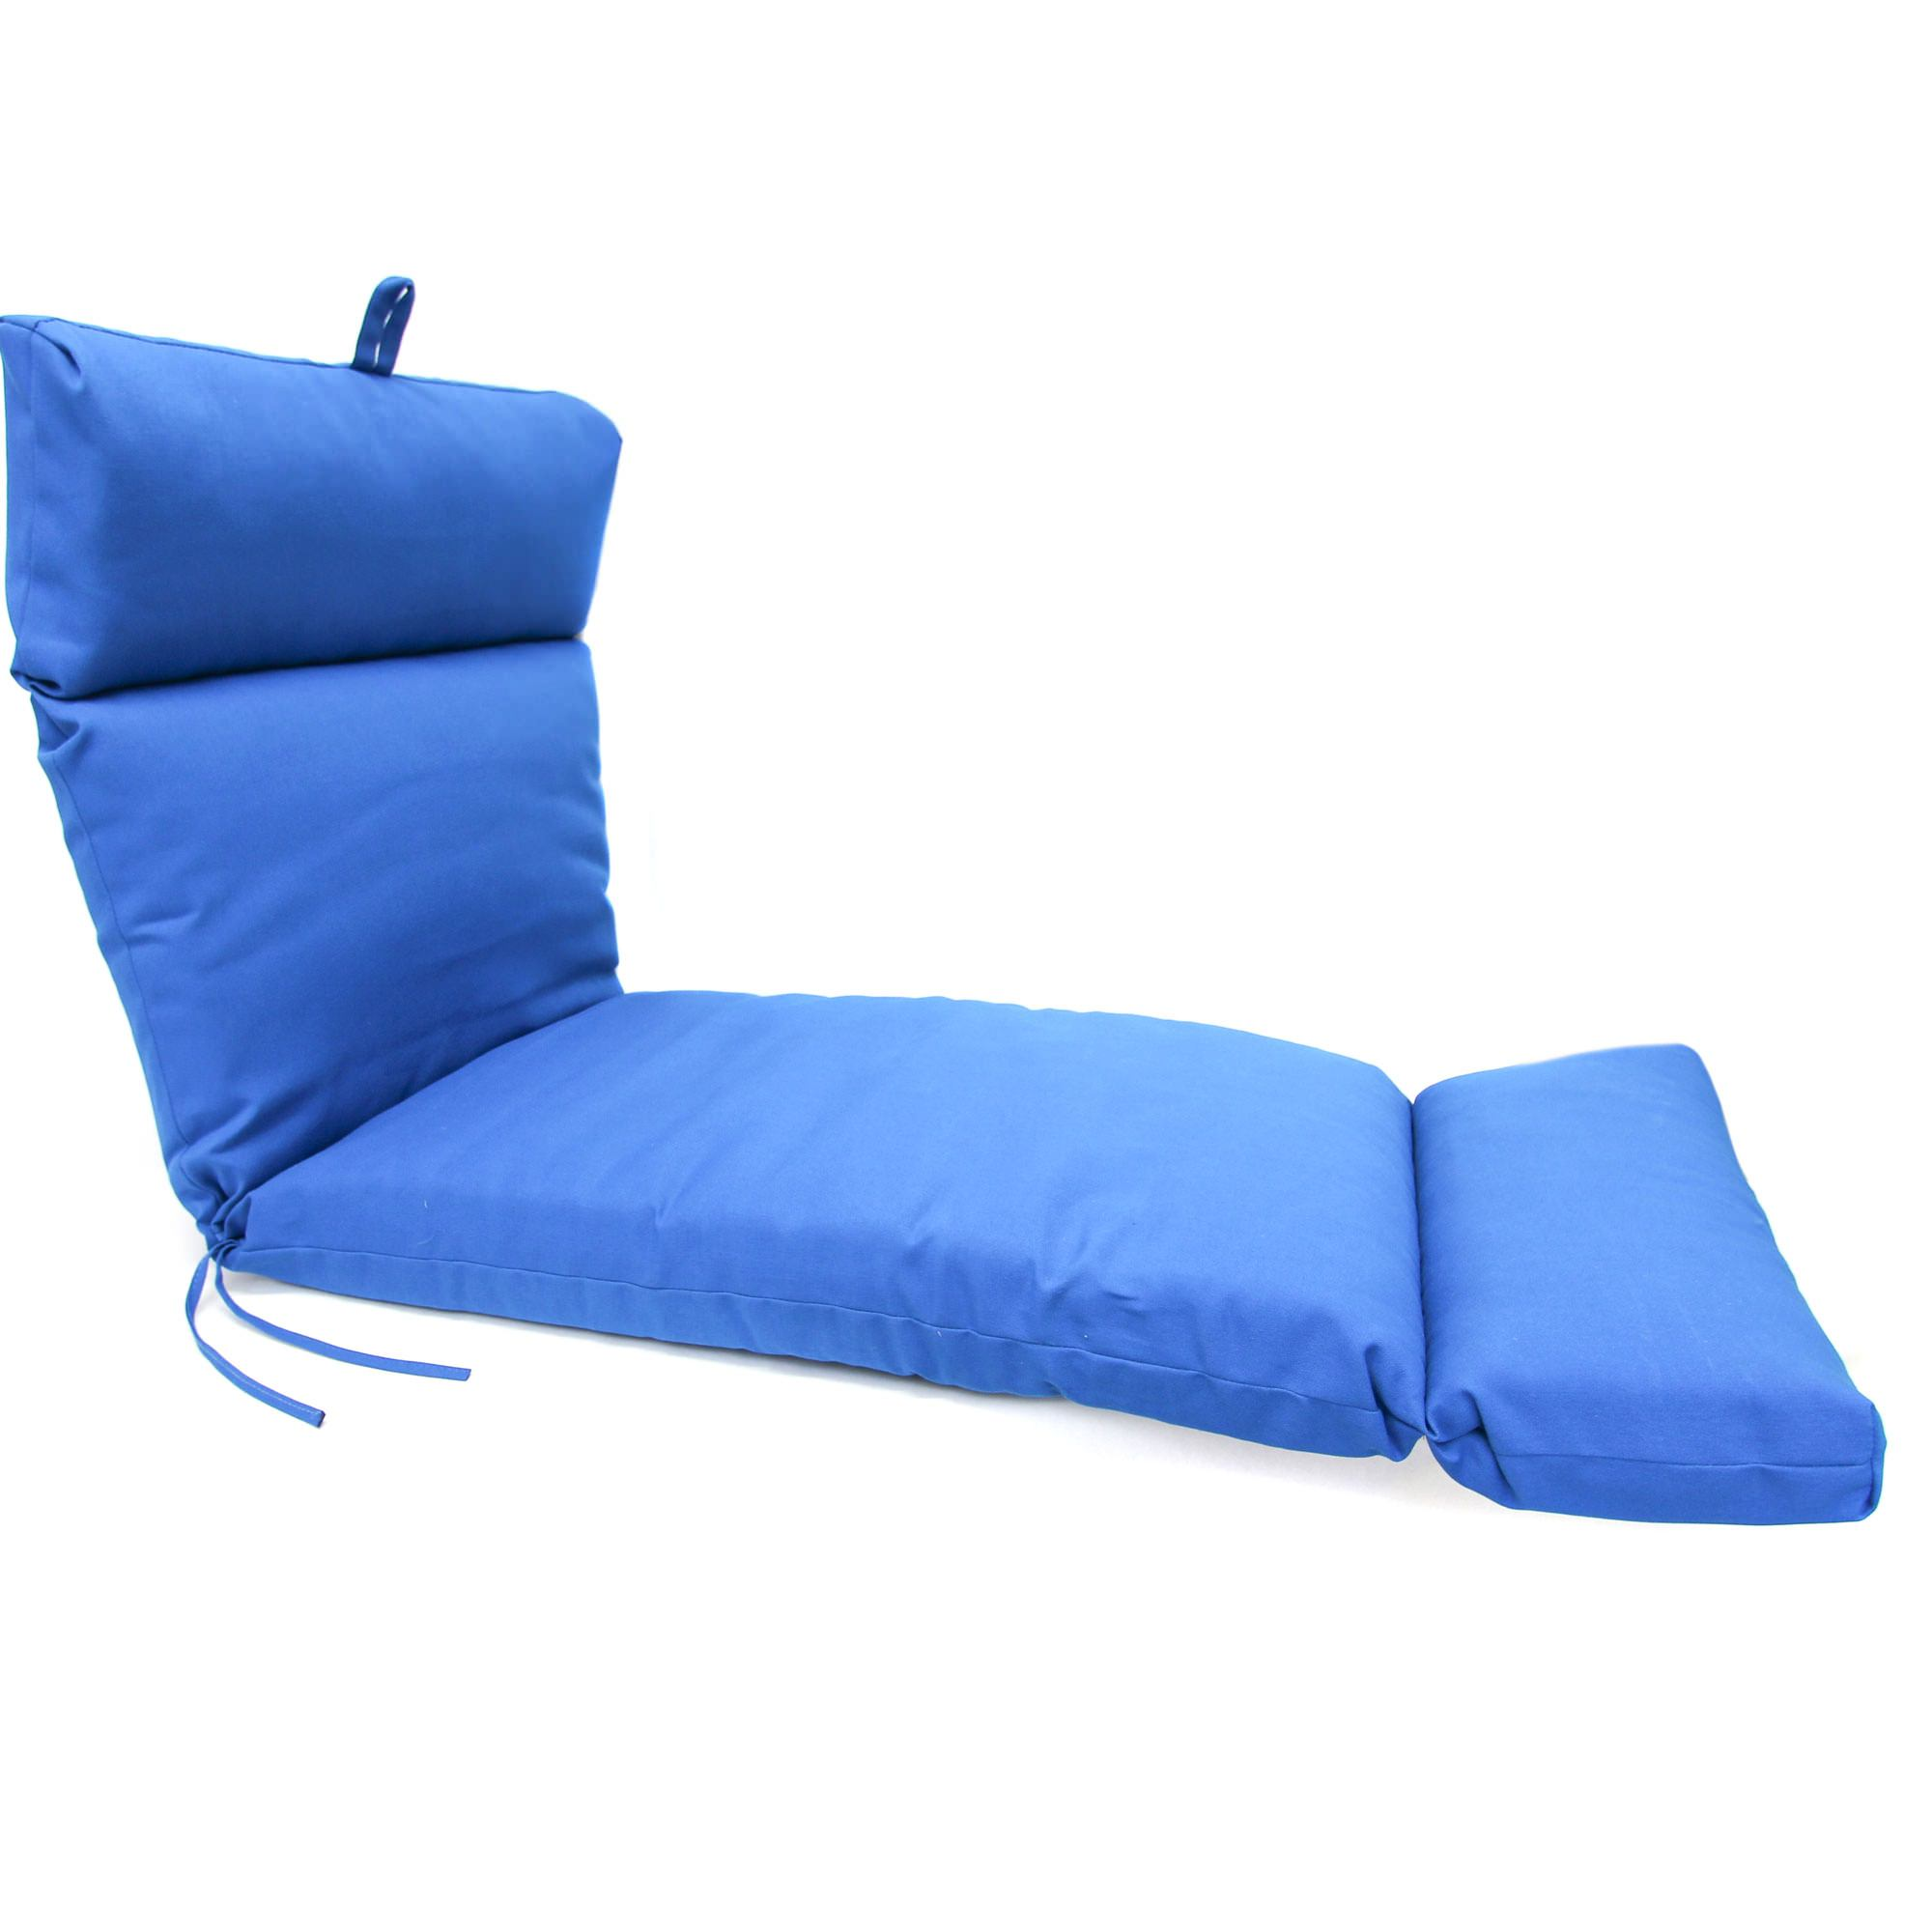 Pacific blue chaise lounge cushion dfohome for Chaise longue cushion